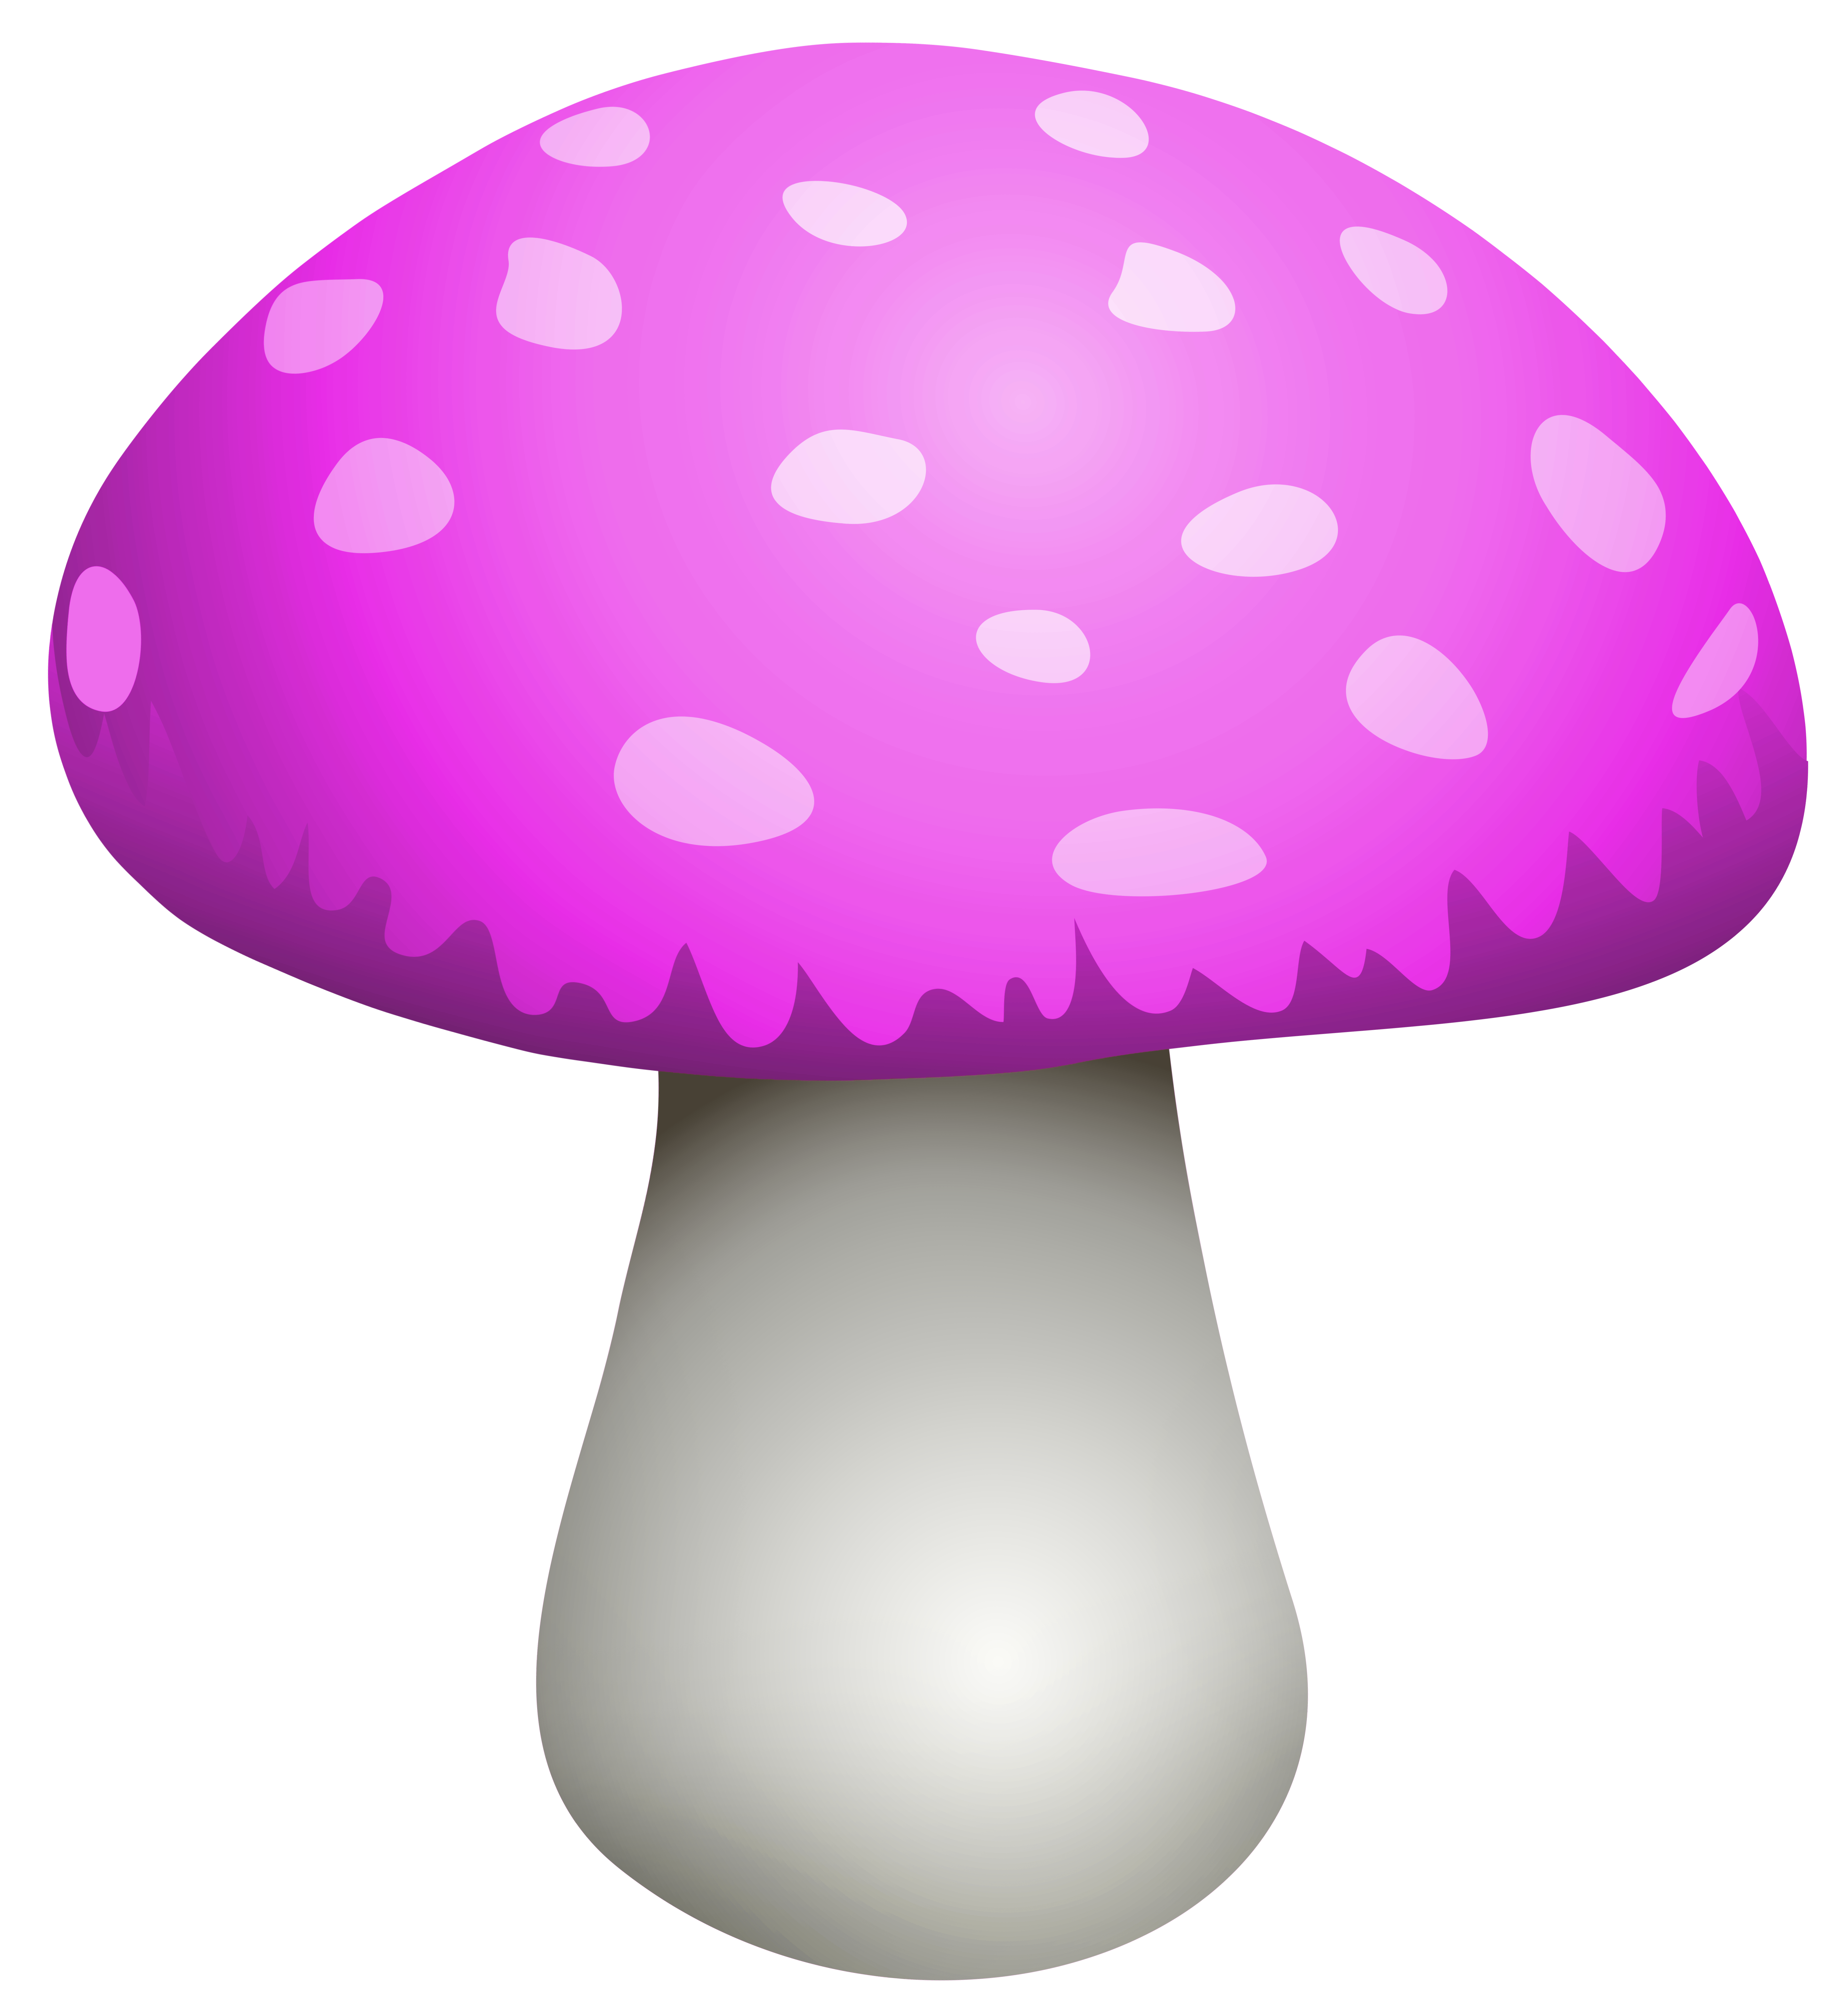 Pink Mushroom PNG Clipart.